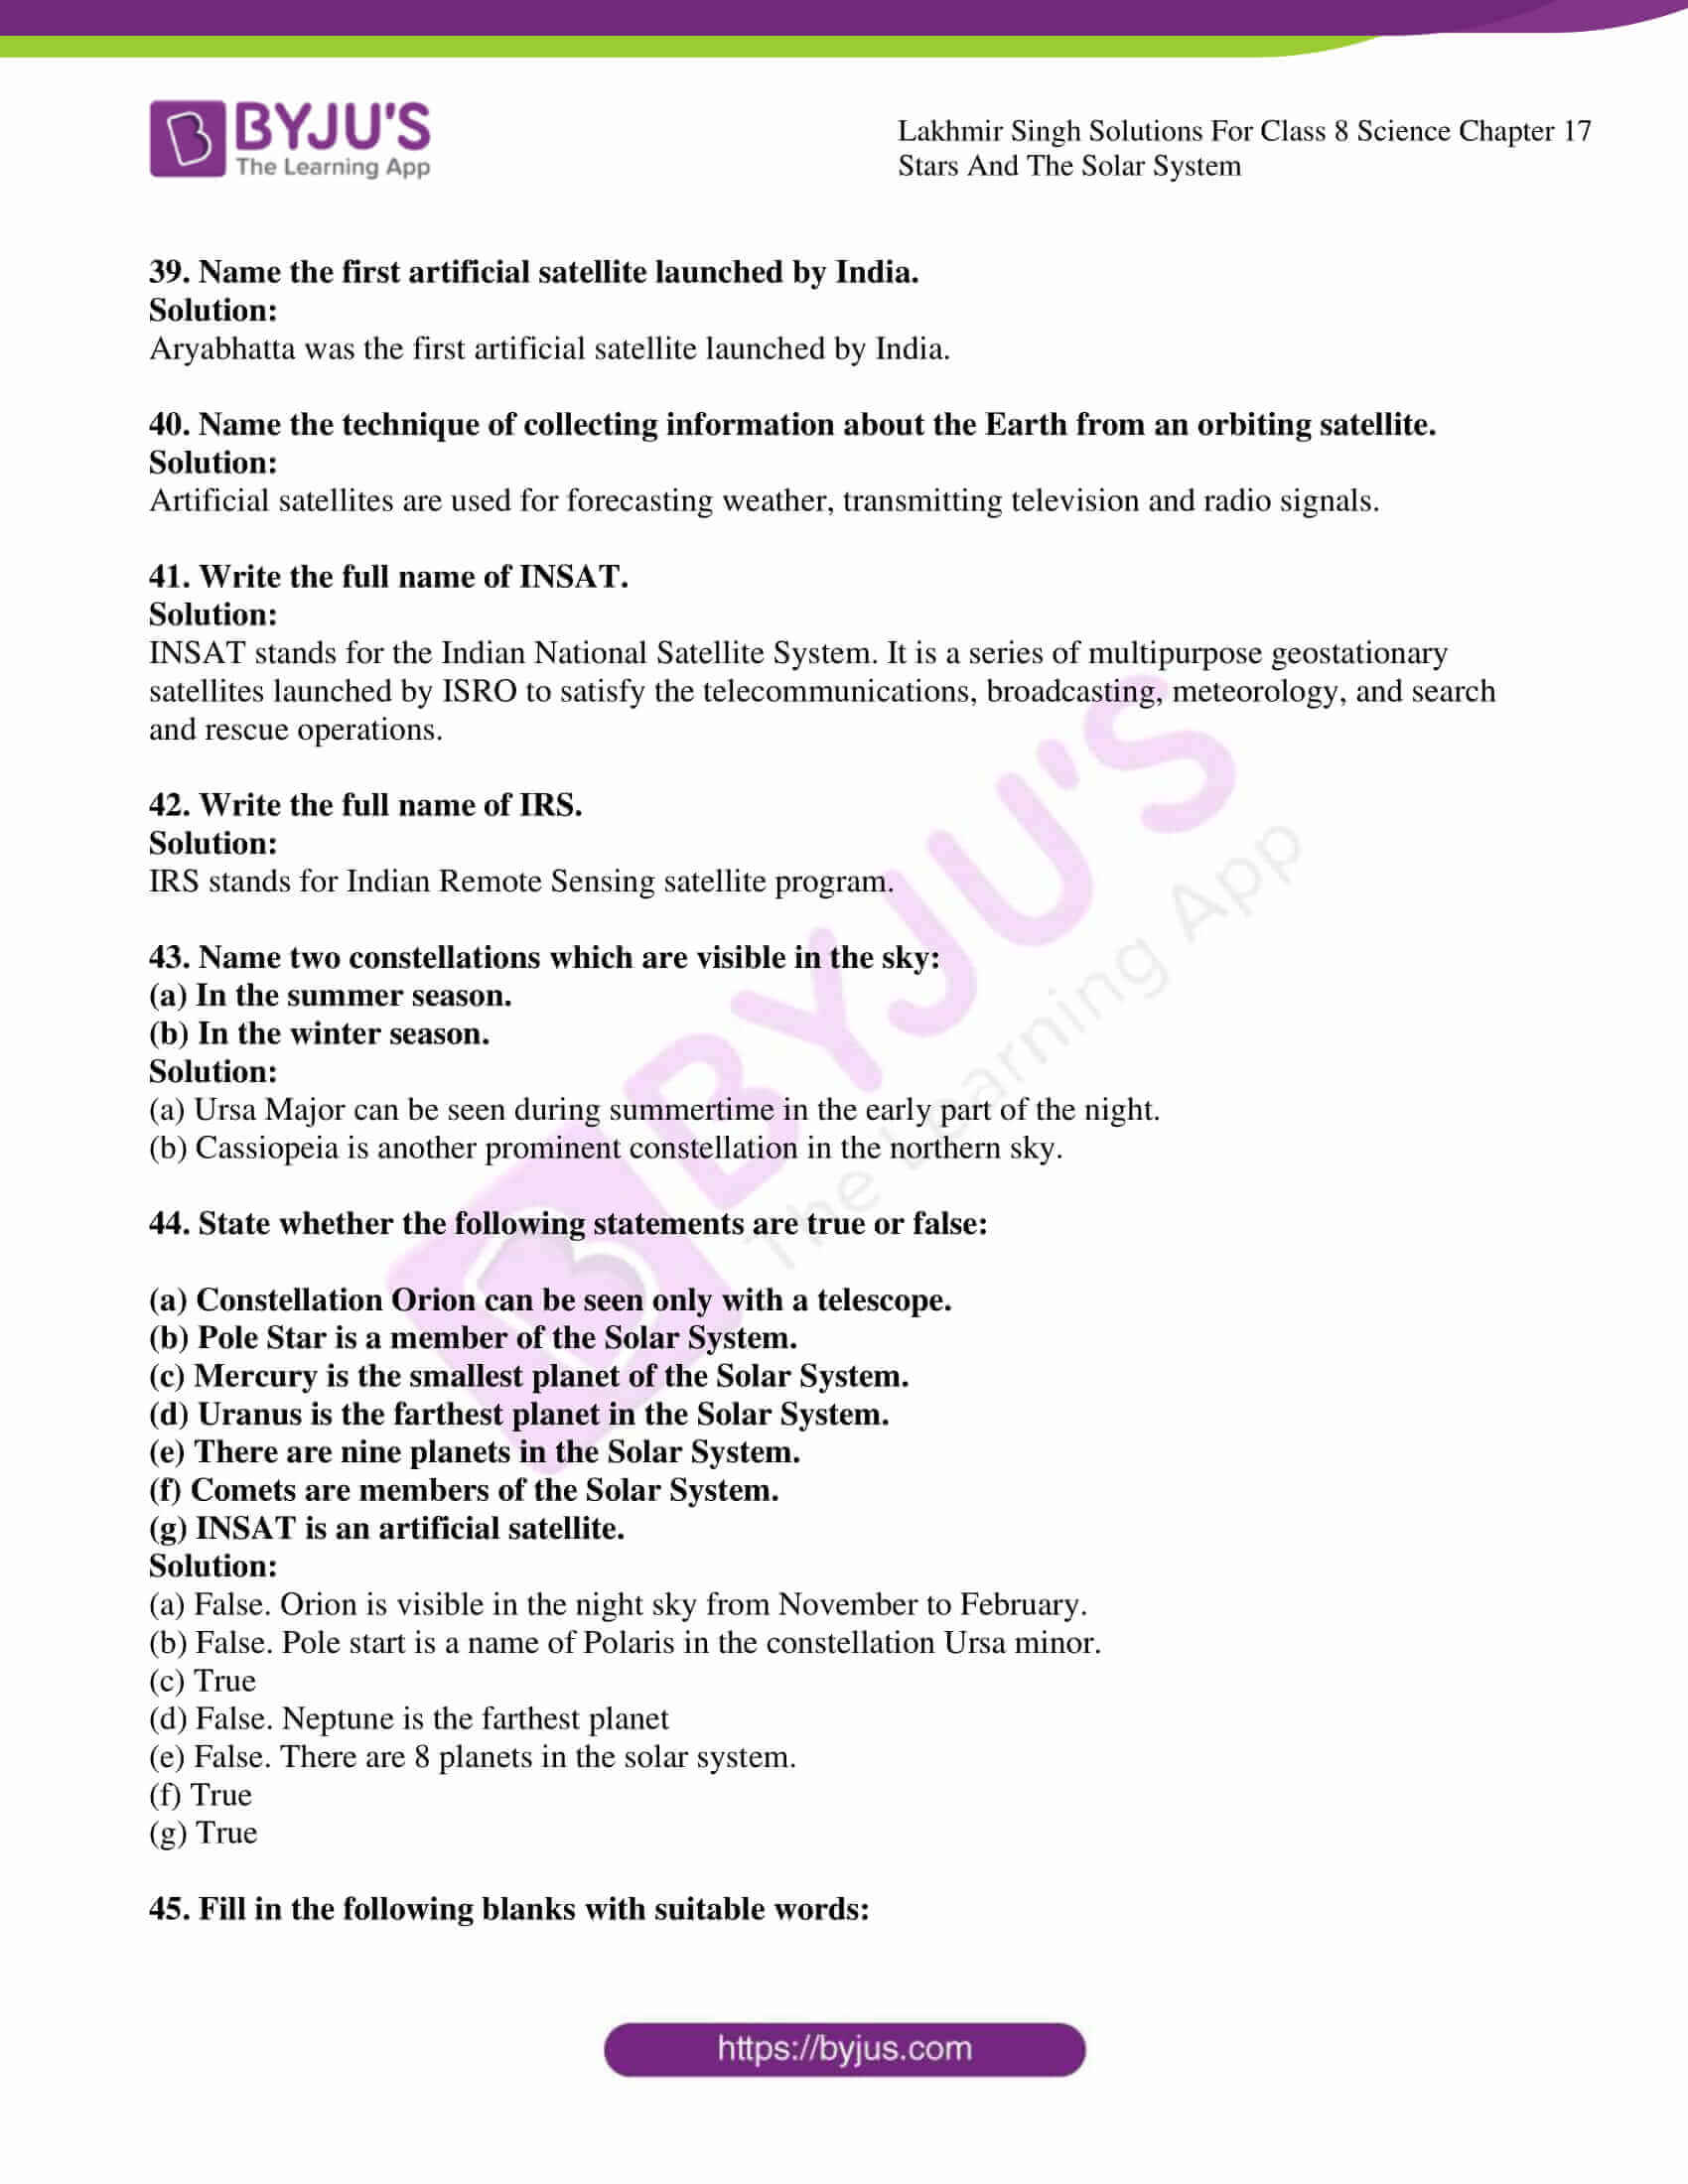 lakhmir singh solutions for class 8 science chapter 17 5